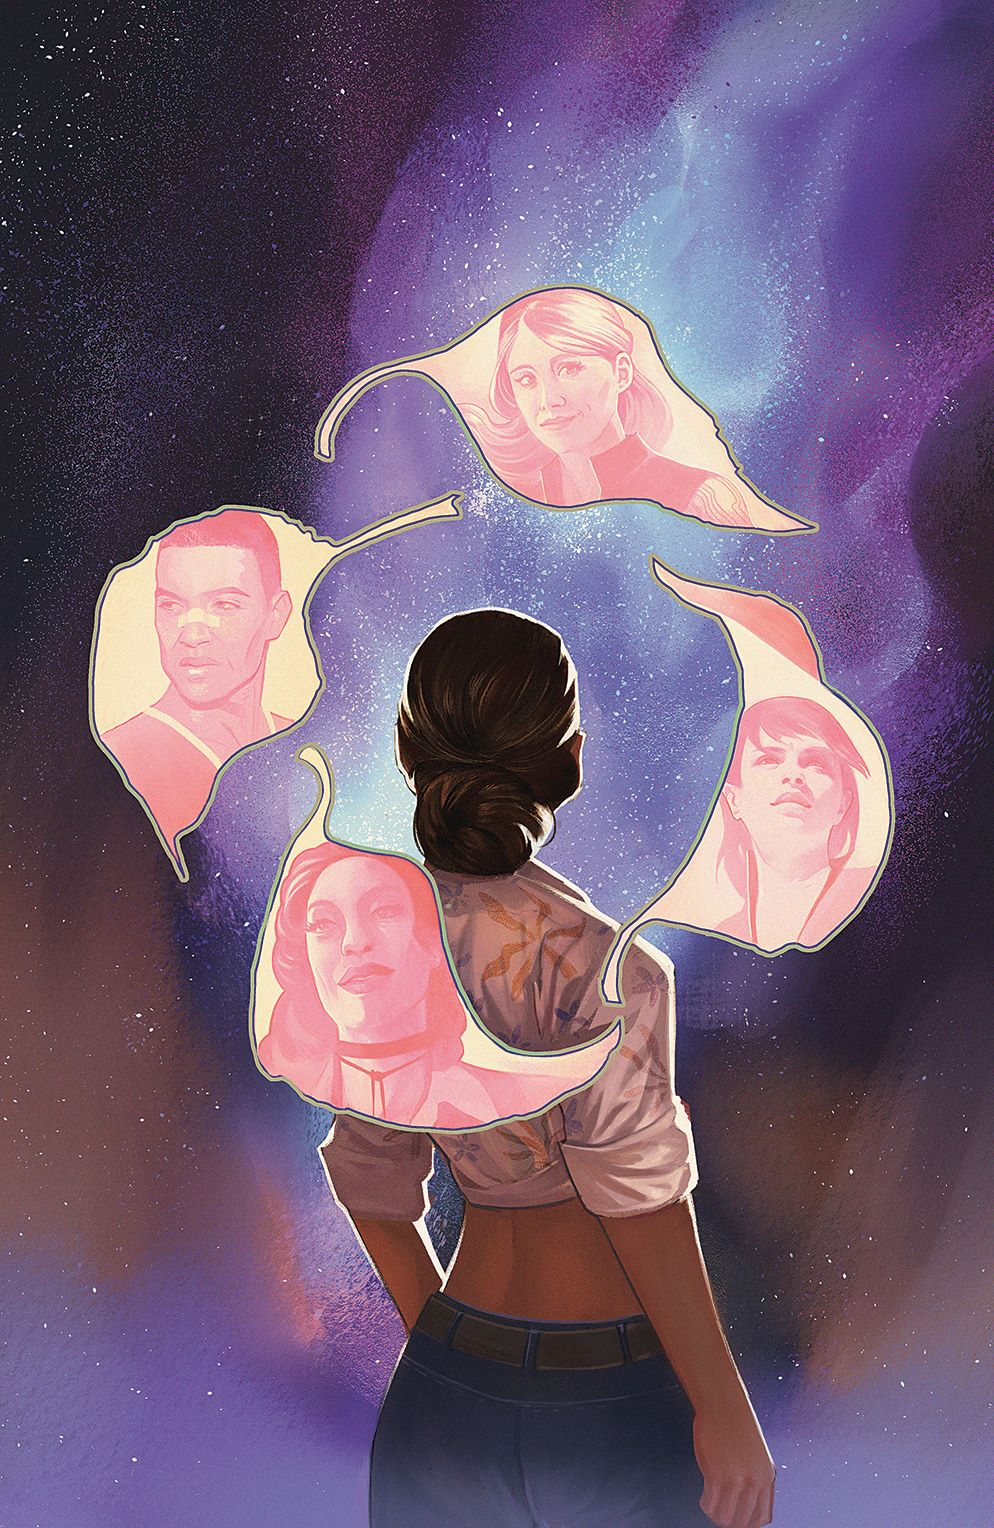 Firefly_BrandNewVerse_002_Cover_E_UnlockableVariant ComicList Previews: FIREFLY A BRAND NEW 'VERSE #2 (OF 6)